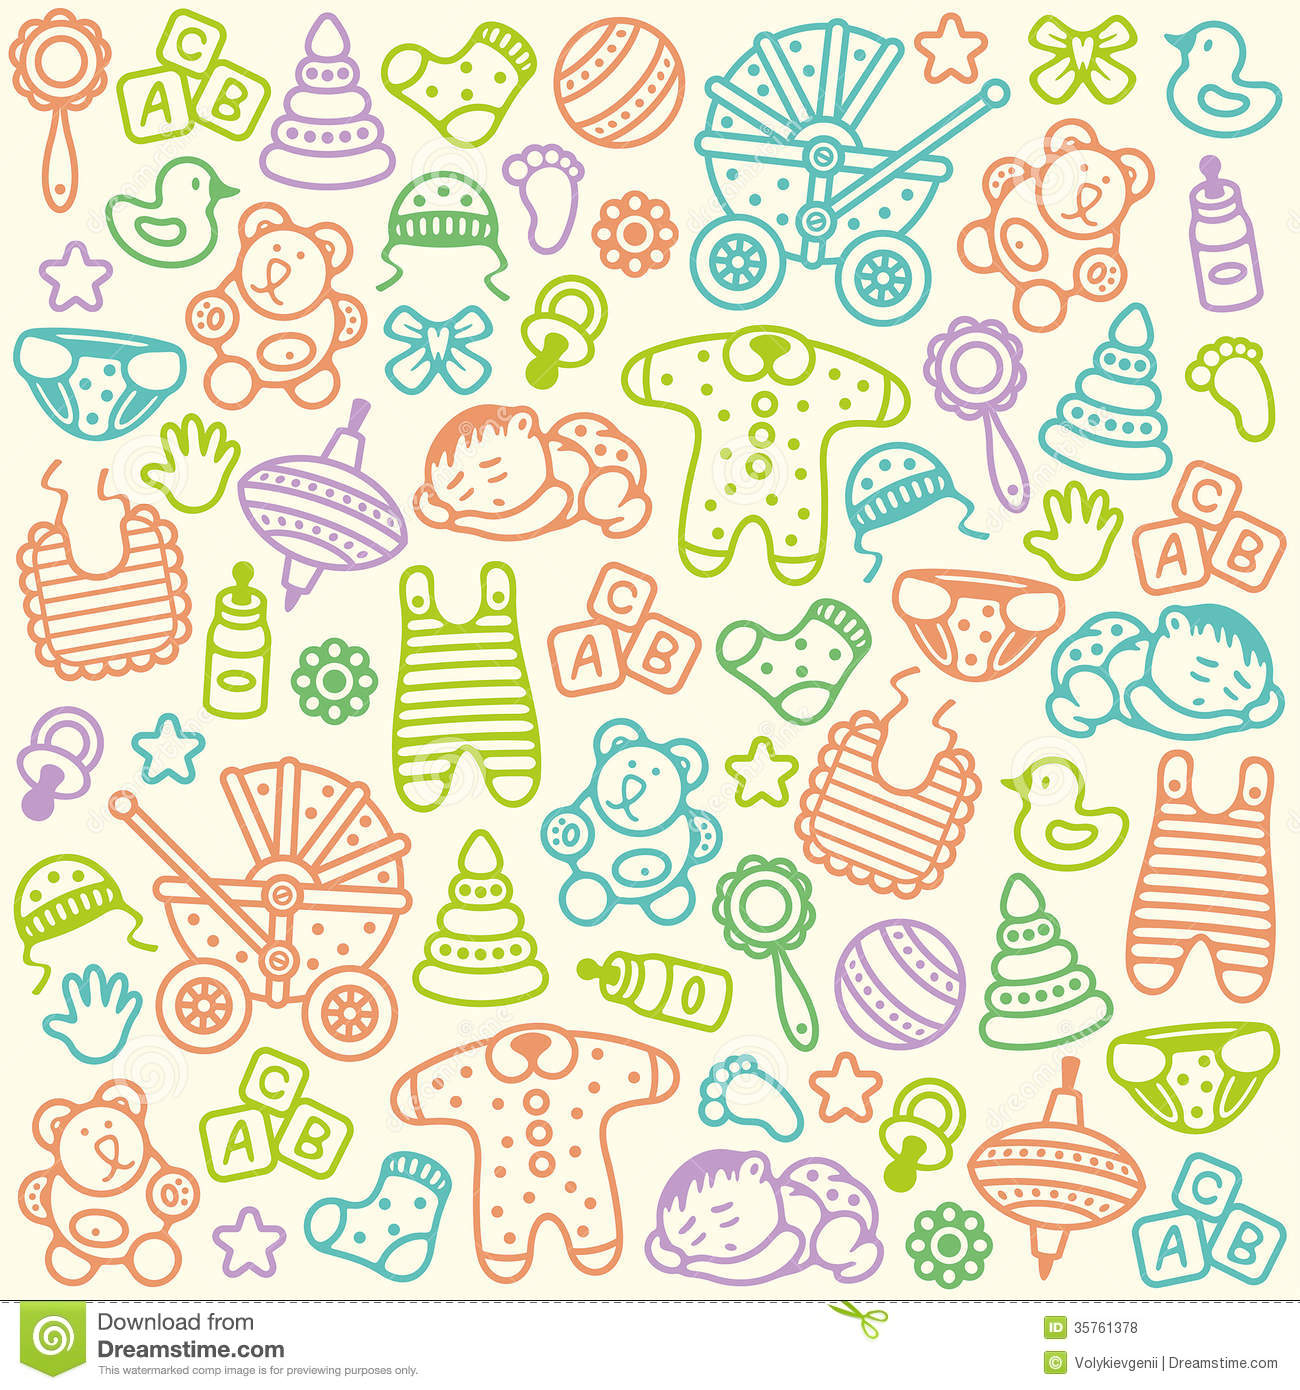 Baby Patterns : Baby Pattern Royalty Free Stock Photos - Image: 35761378